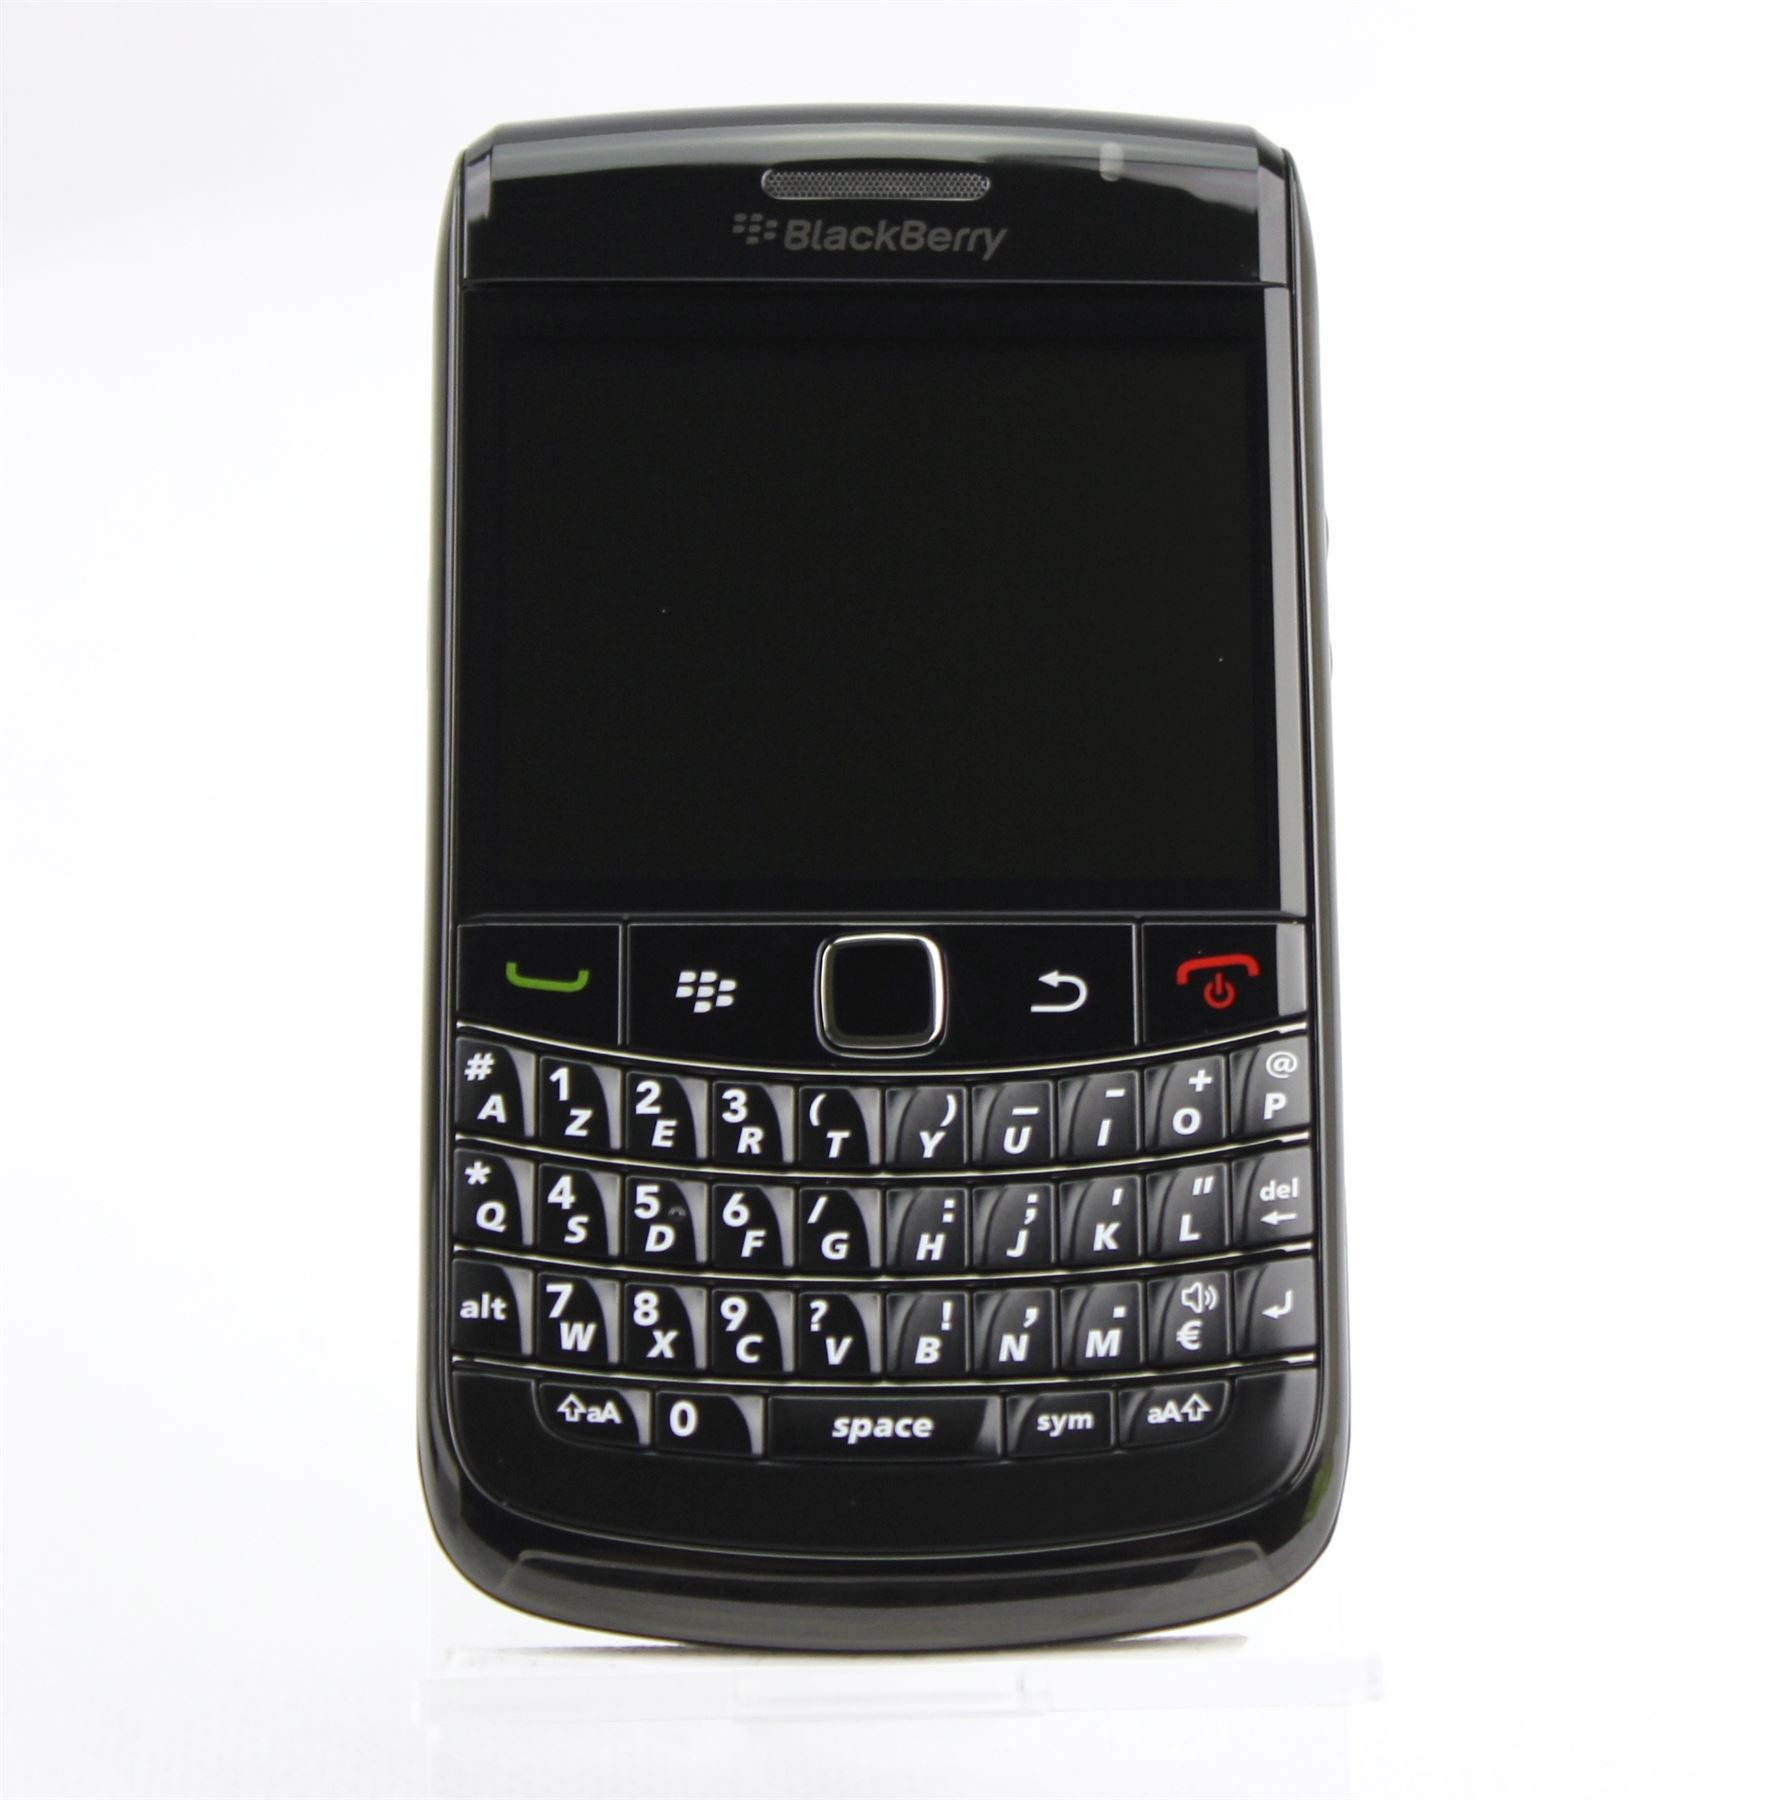 blackberry bold 9780 unlocked sim free 5mp new 3g bbm. Black Bedroom Furniture Sets. Home Design Ideas